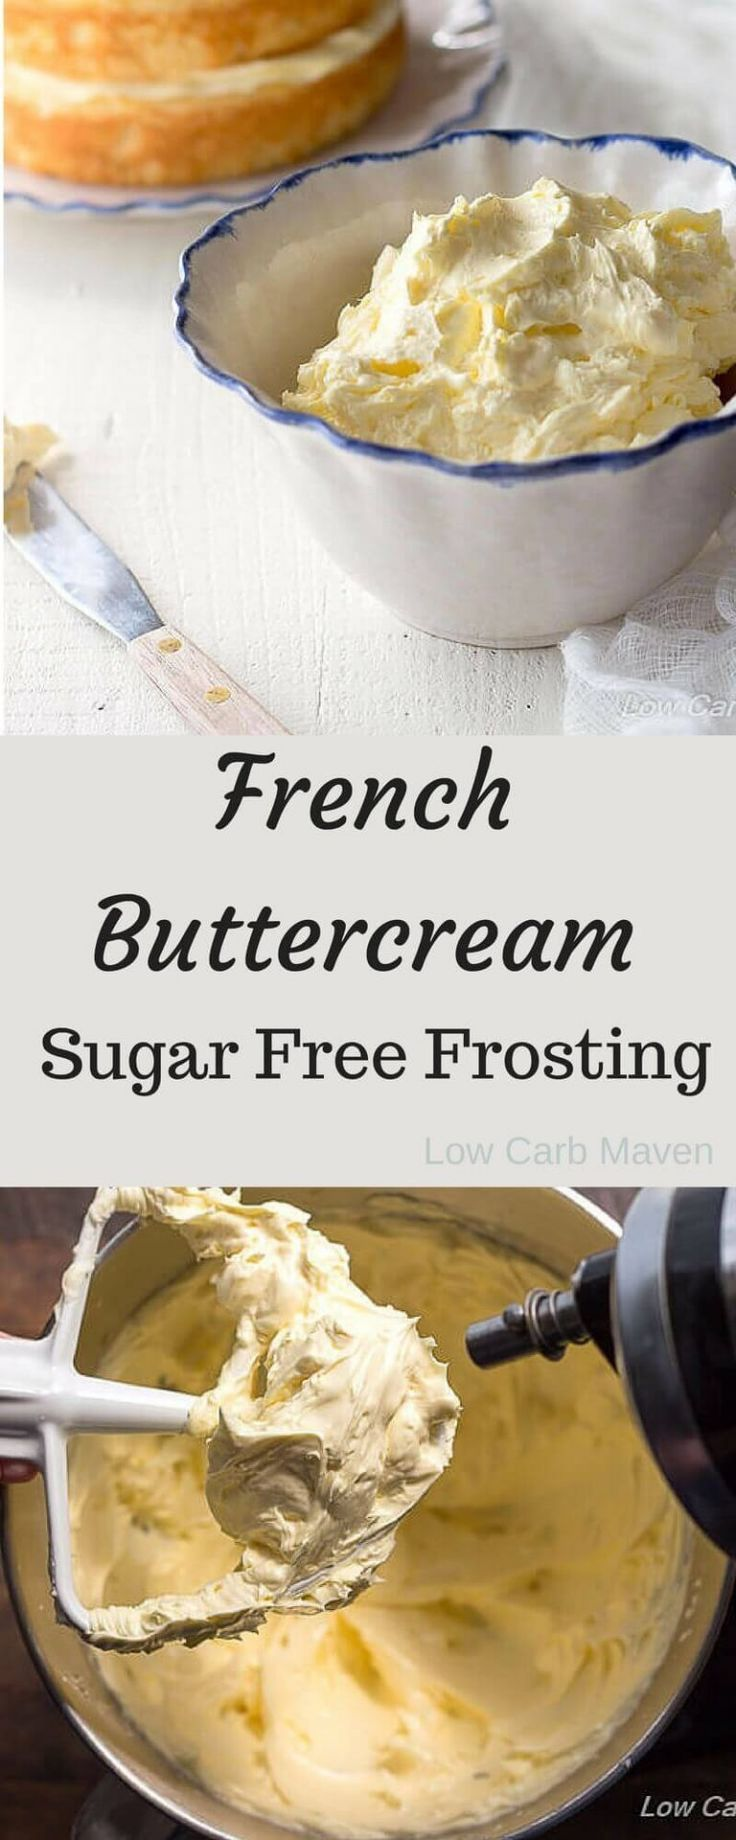 Low Carb Sugar Free French Buttercream Frosting